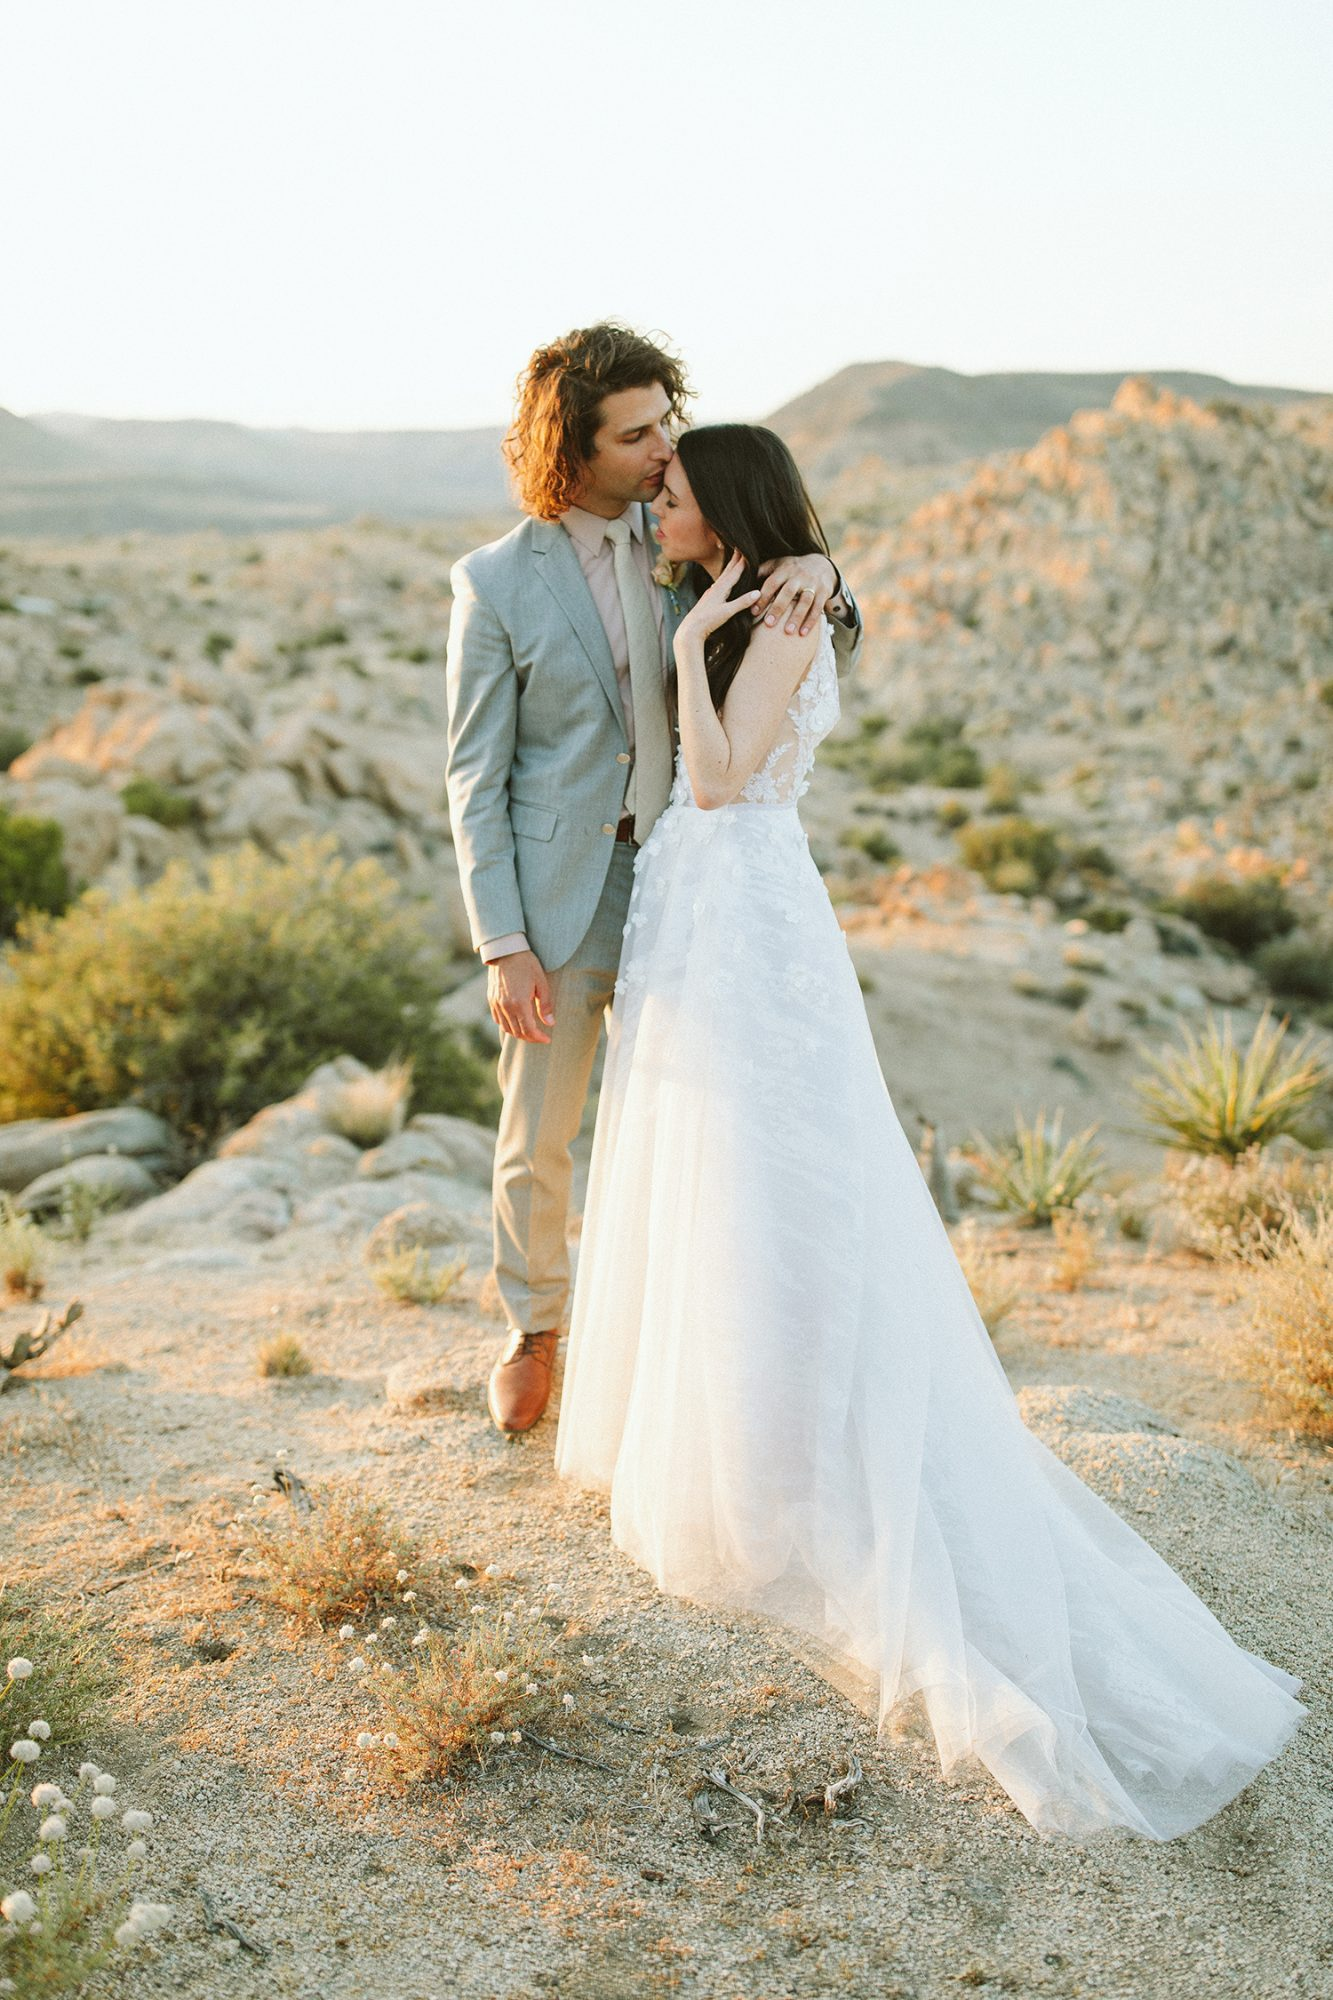 ashley basil wedding couple with desert hills